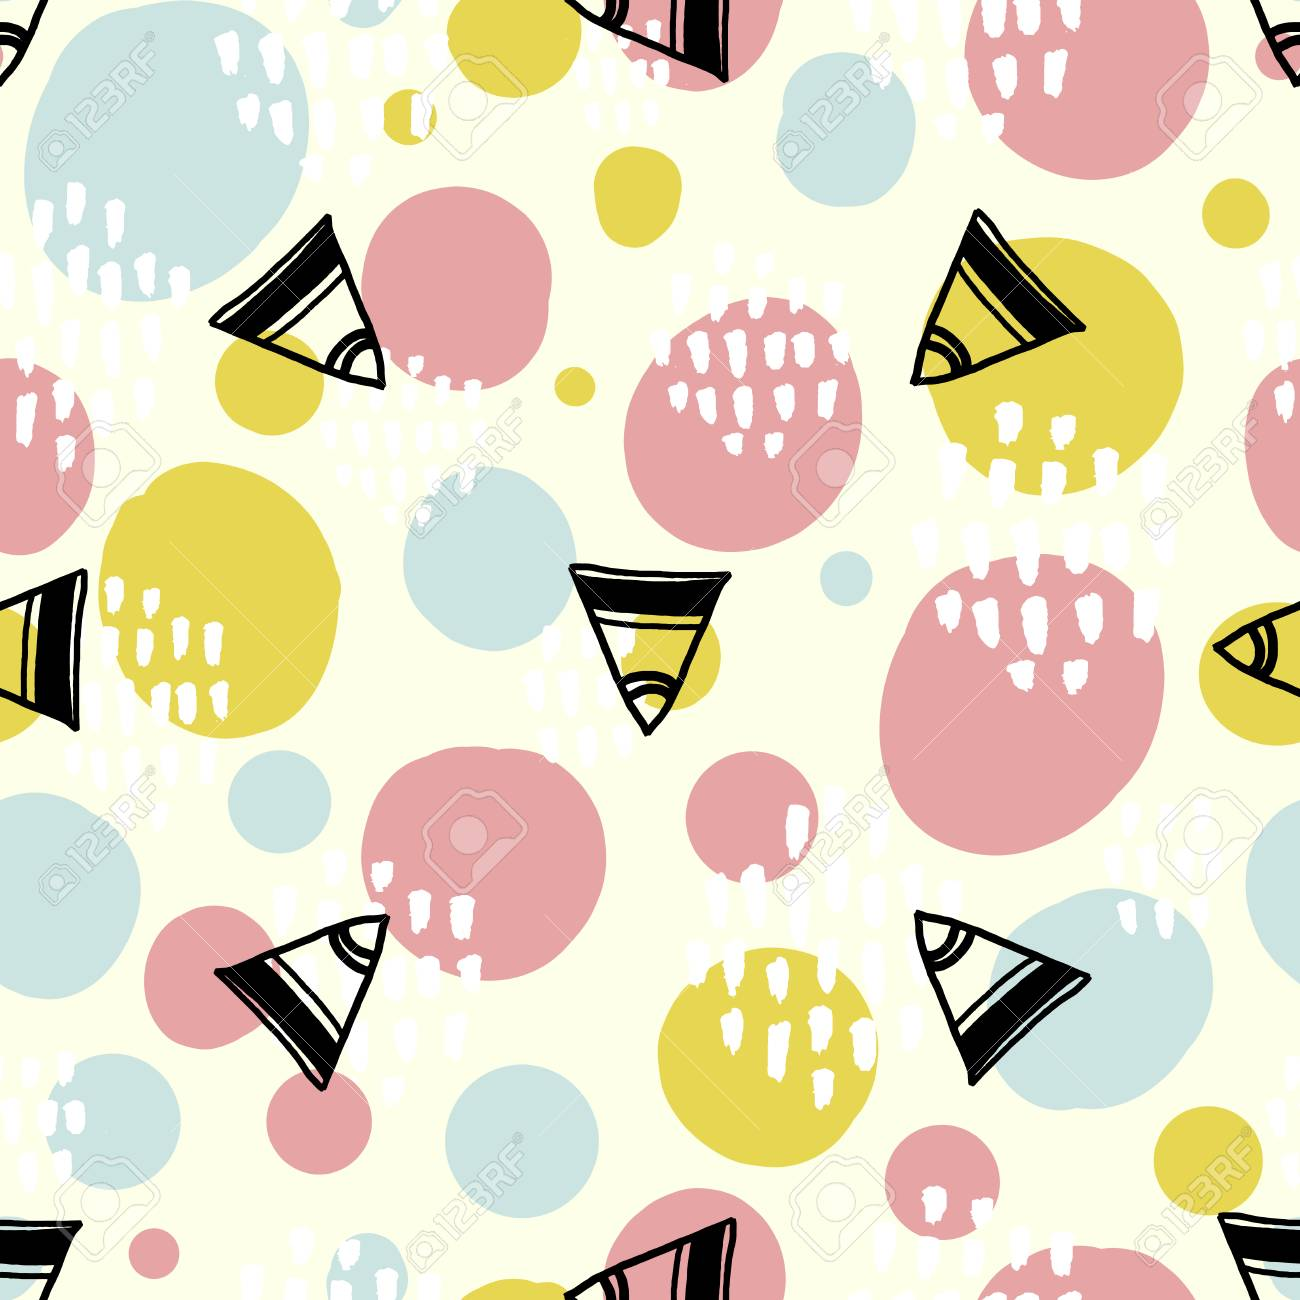 pop background with simple geometry shapes circles and triangles